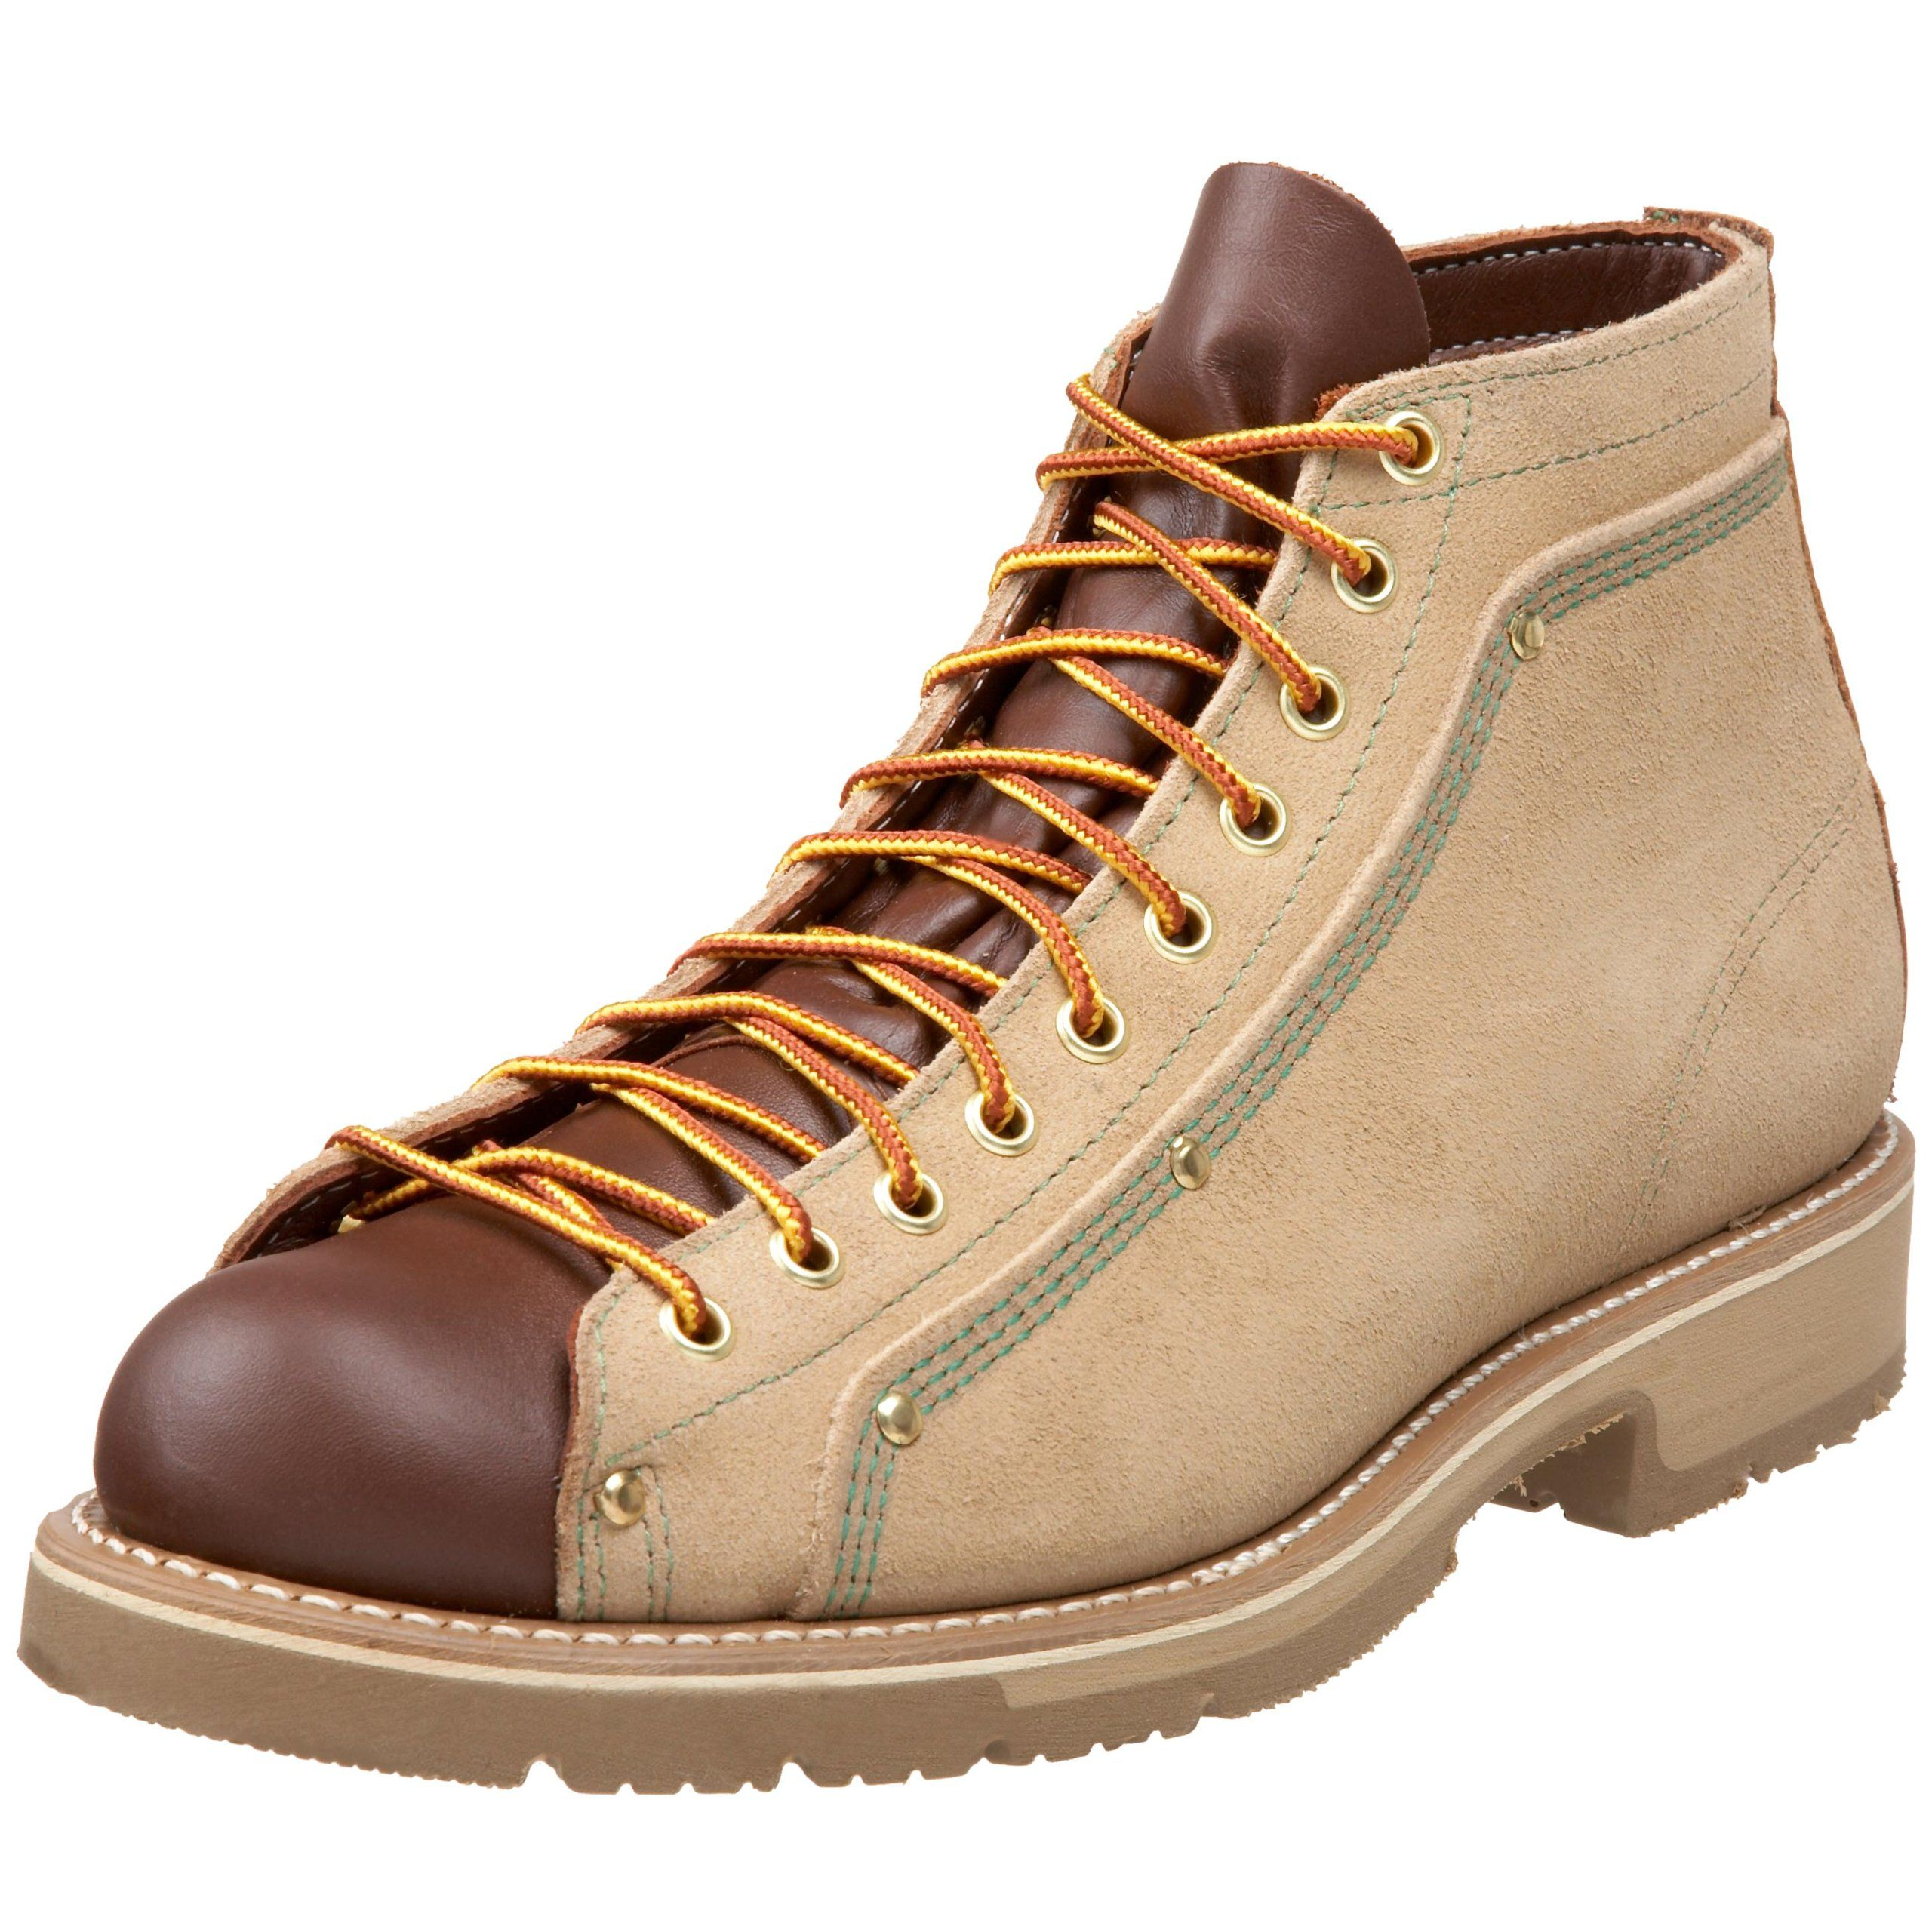 9d6213d5a00 Amazon.com: Thorogood Men's American Heritage Roofer Boot ...